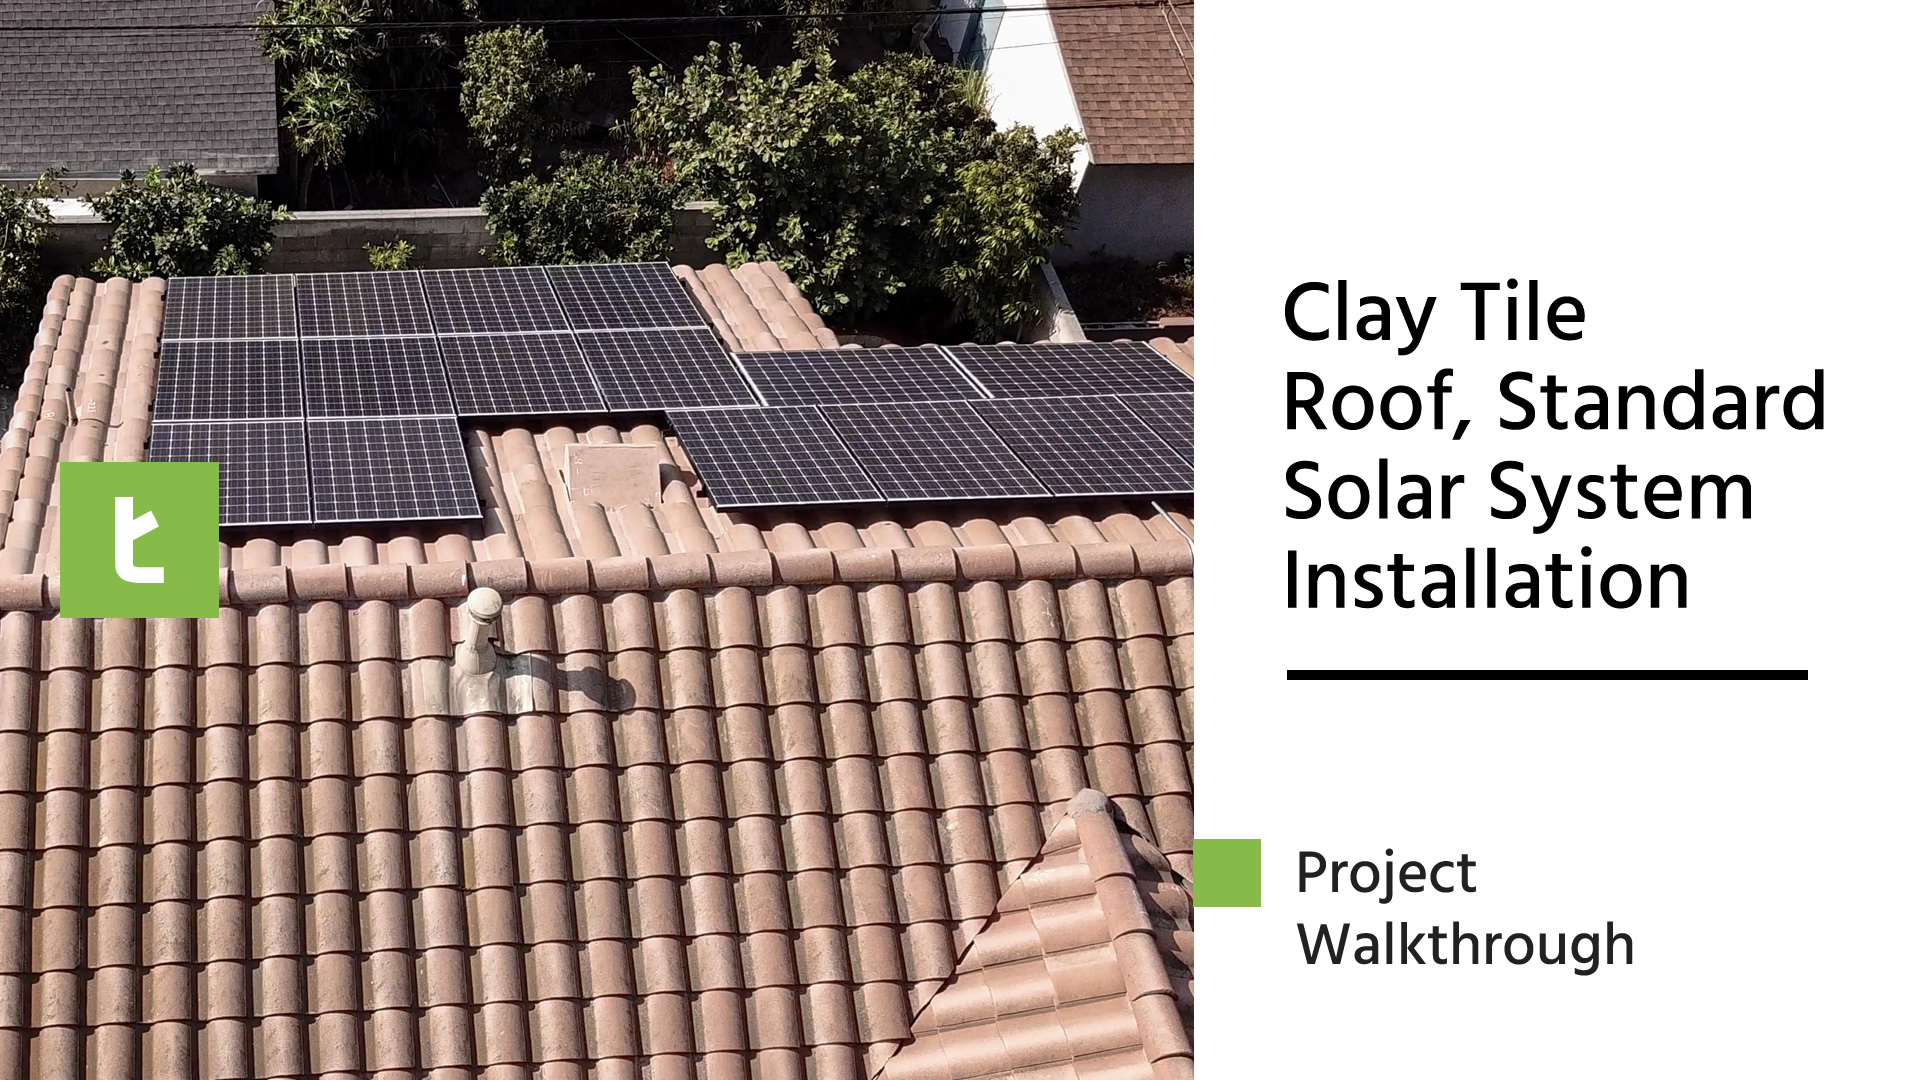 Clay Tile Roof, Standard Solar System Installation